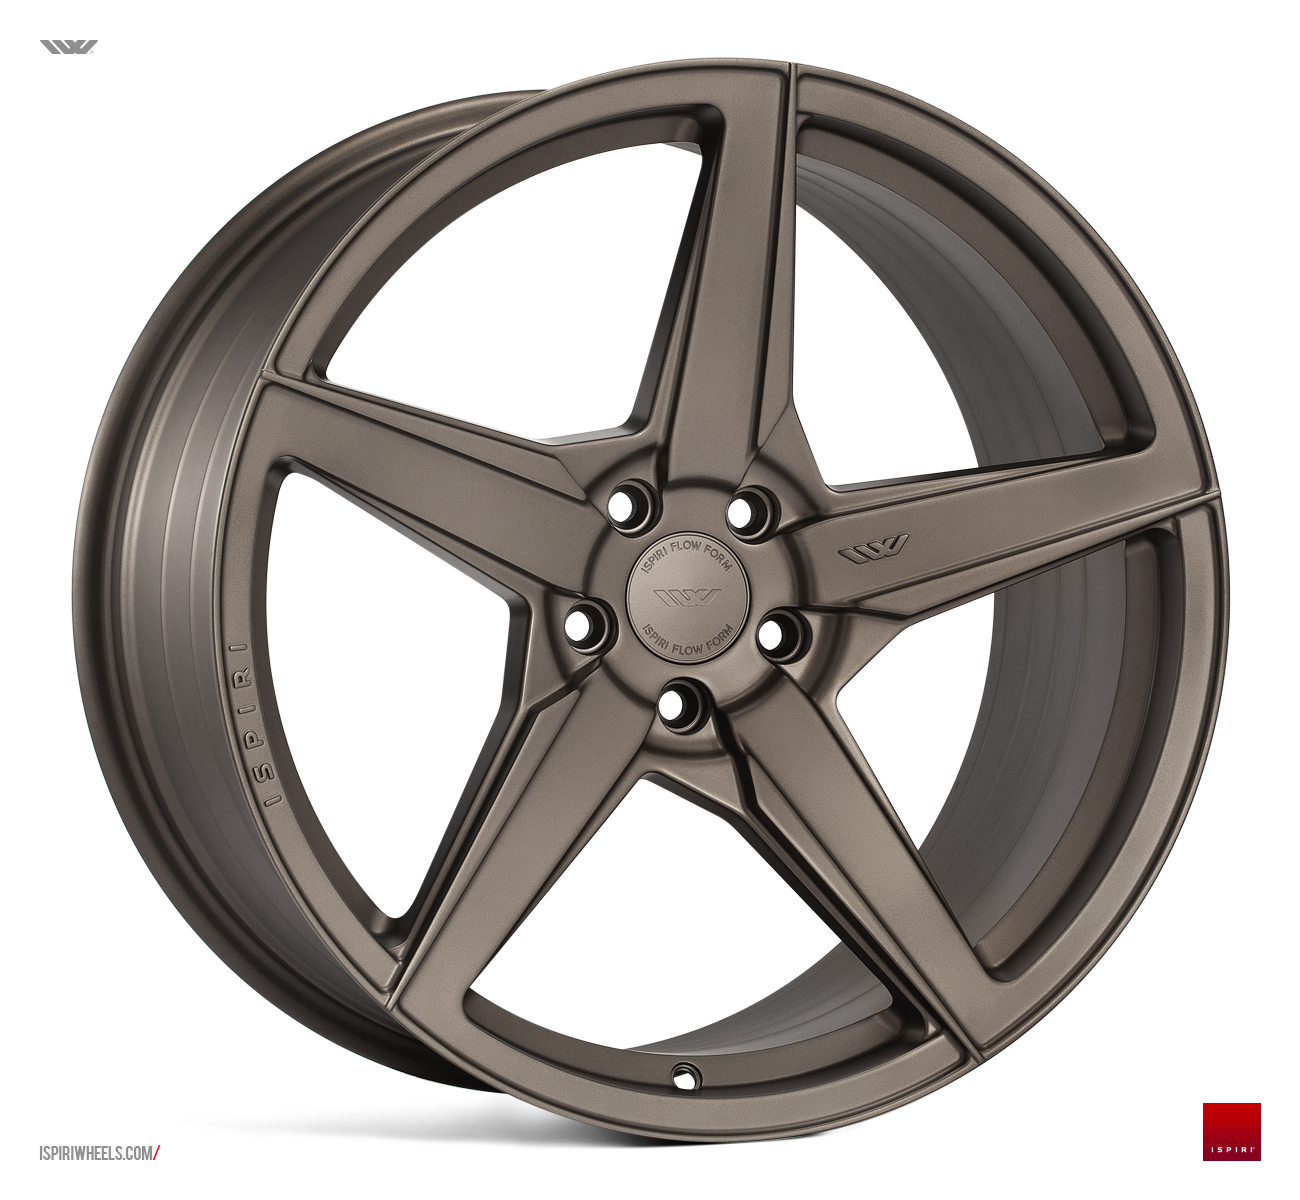 "NEW 20"" ISPIRI FFR5 5 SPOKE ALLOY WHEELS IN MATT CARBON BRONZE, WIDER 10"" REARS et32/45 5X112"